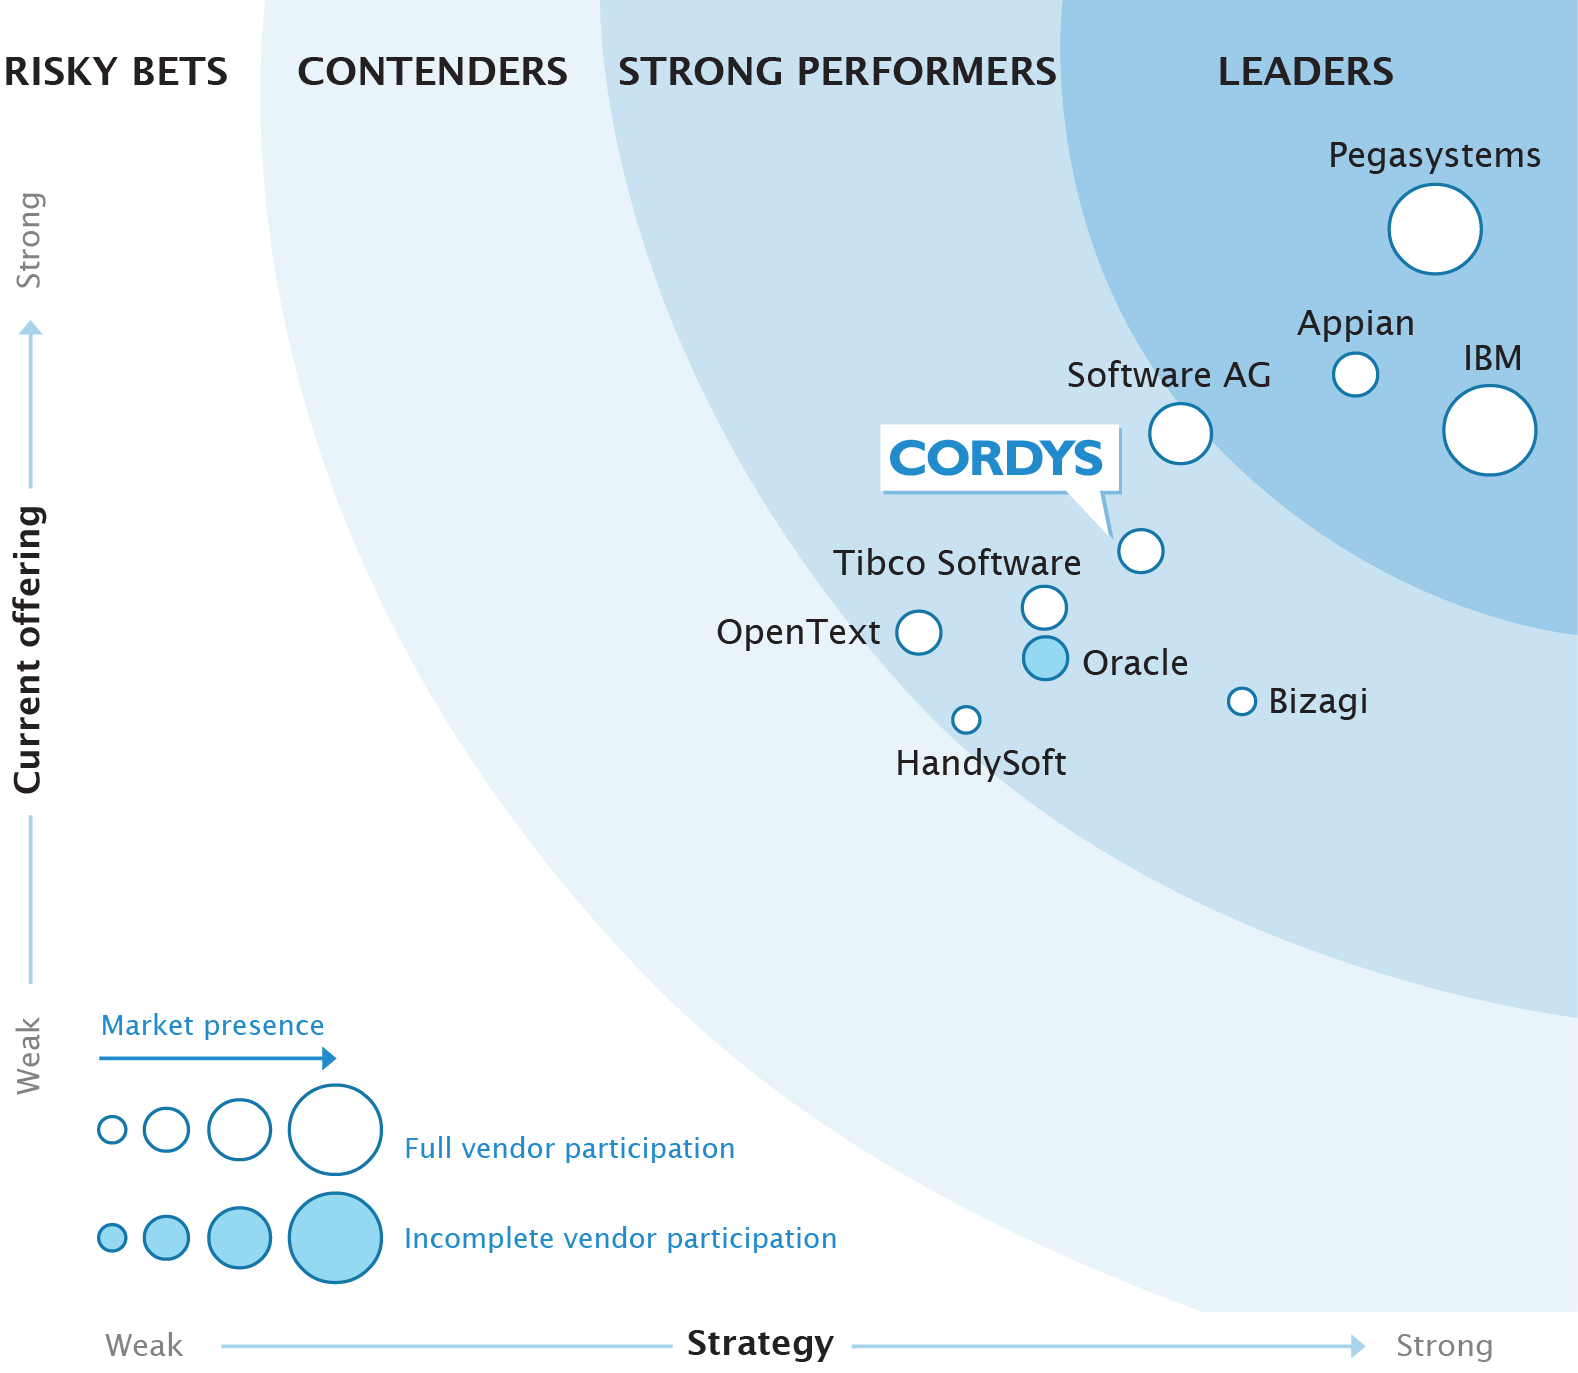 Cordys nominata Strong Performer in BPM Suites The Forrester Wave BPM Suites, Q1 2013 La piattaforma Cordys è apprezzata per le notevoli prestazioni come Cloud Provisioning e Platform-as-a-Service